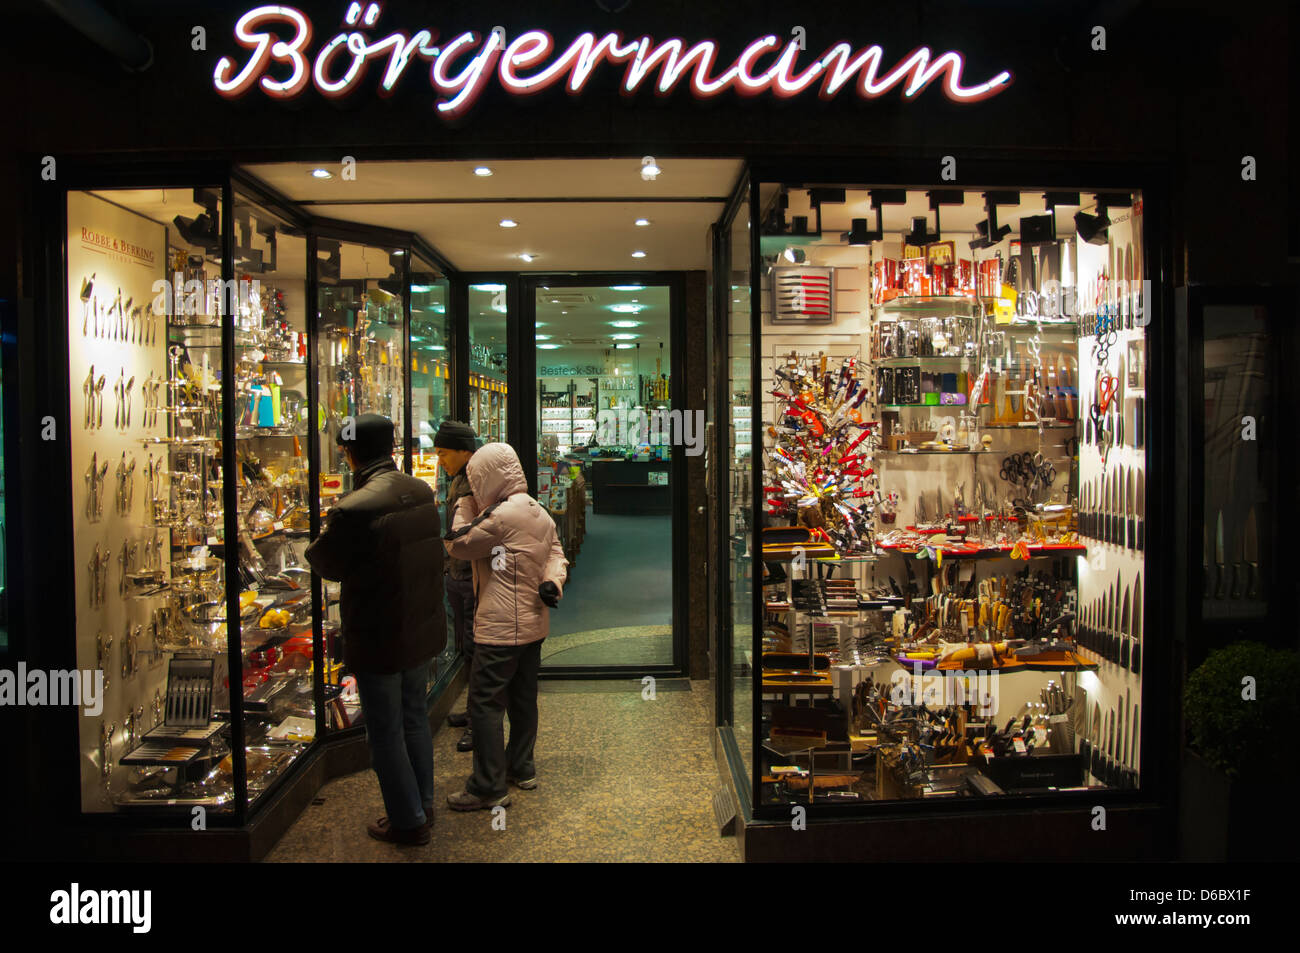 Börgermann Shop Specialising In Knives And Scissors Altstadt The Old Stock Photo Alamy